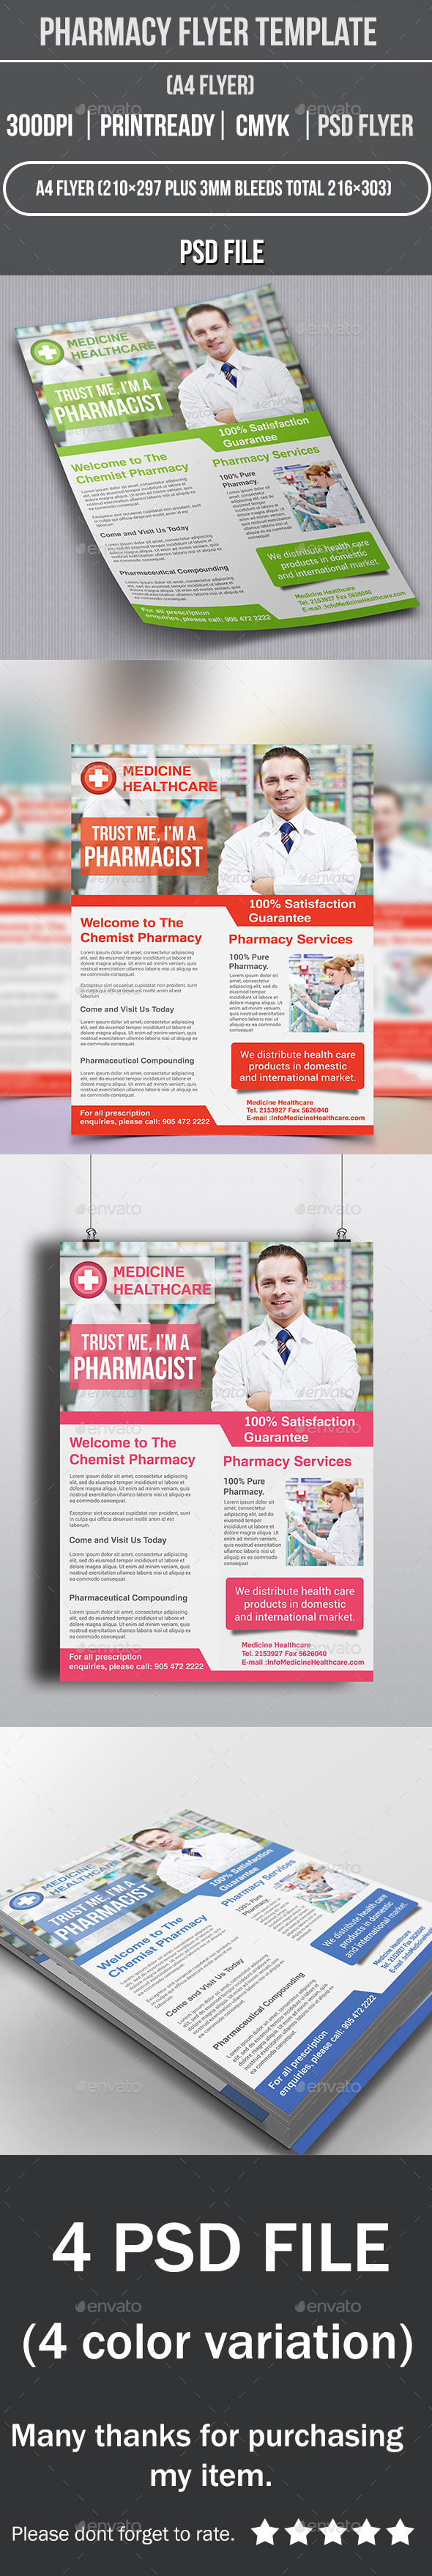 Pharmacy Flyer Template - Corporate Flyers